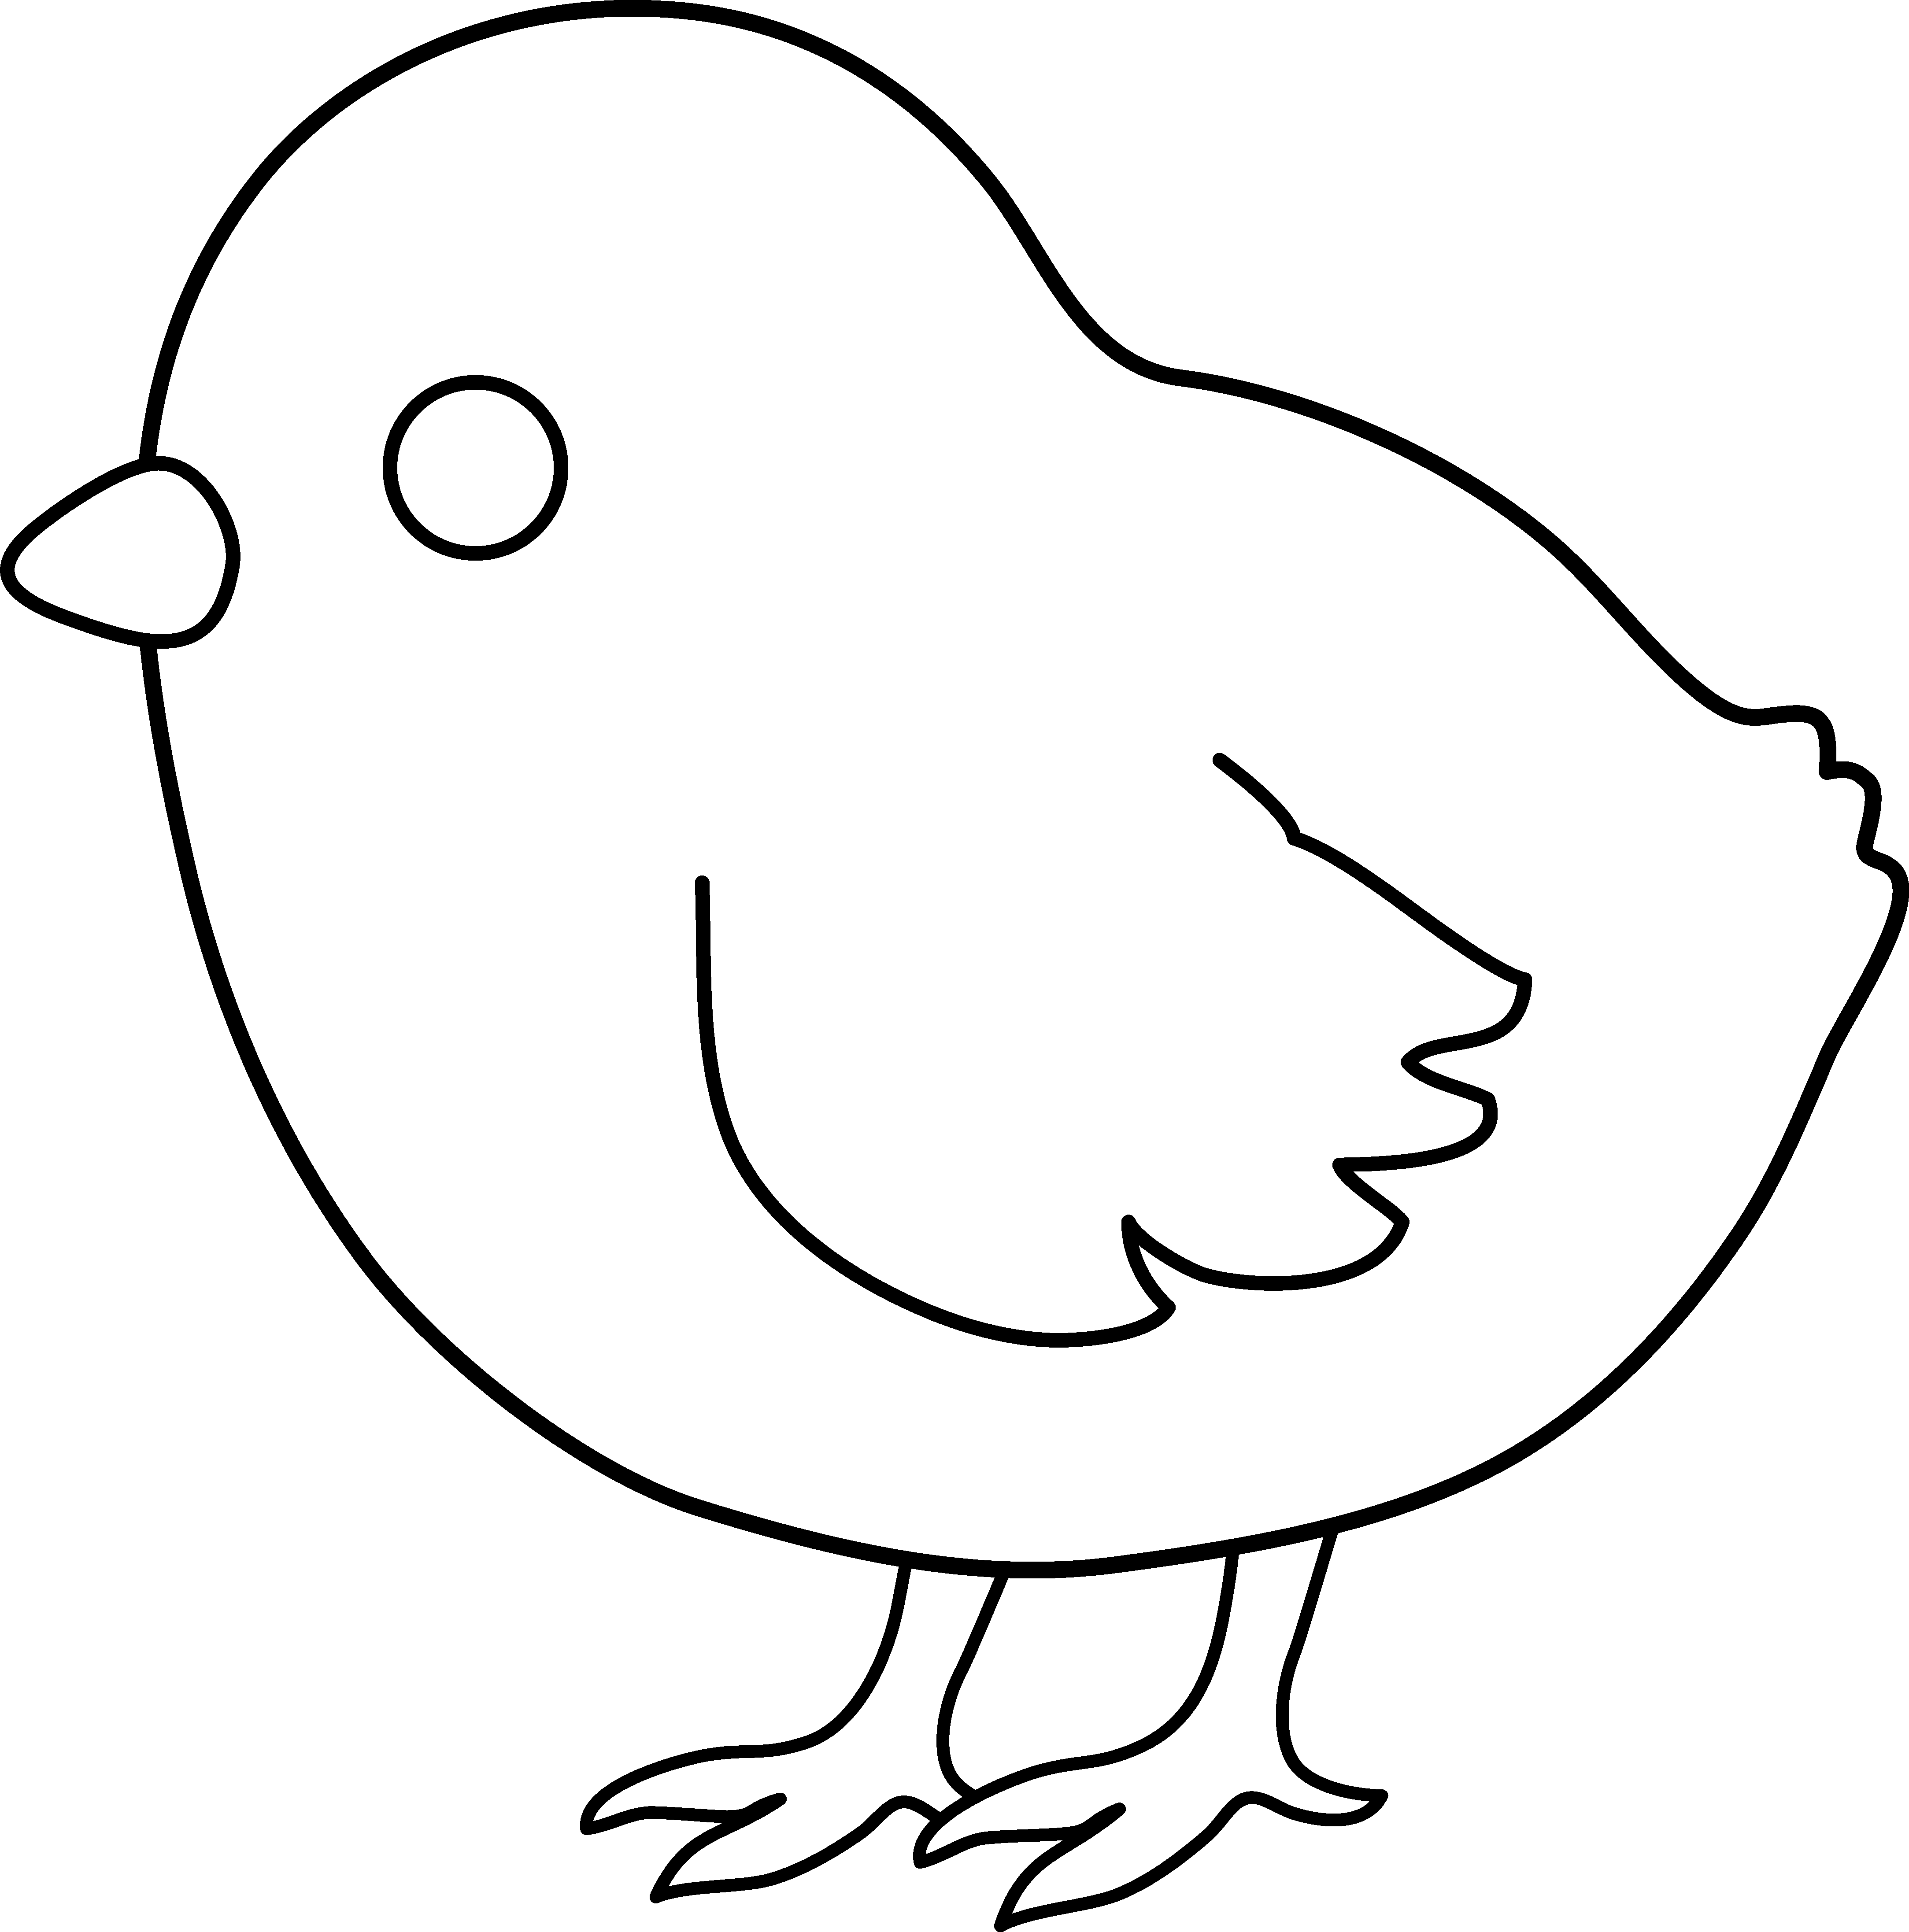 Free Baby Chick Clipart, Download Free Clip Art, Free Clip.